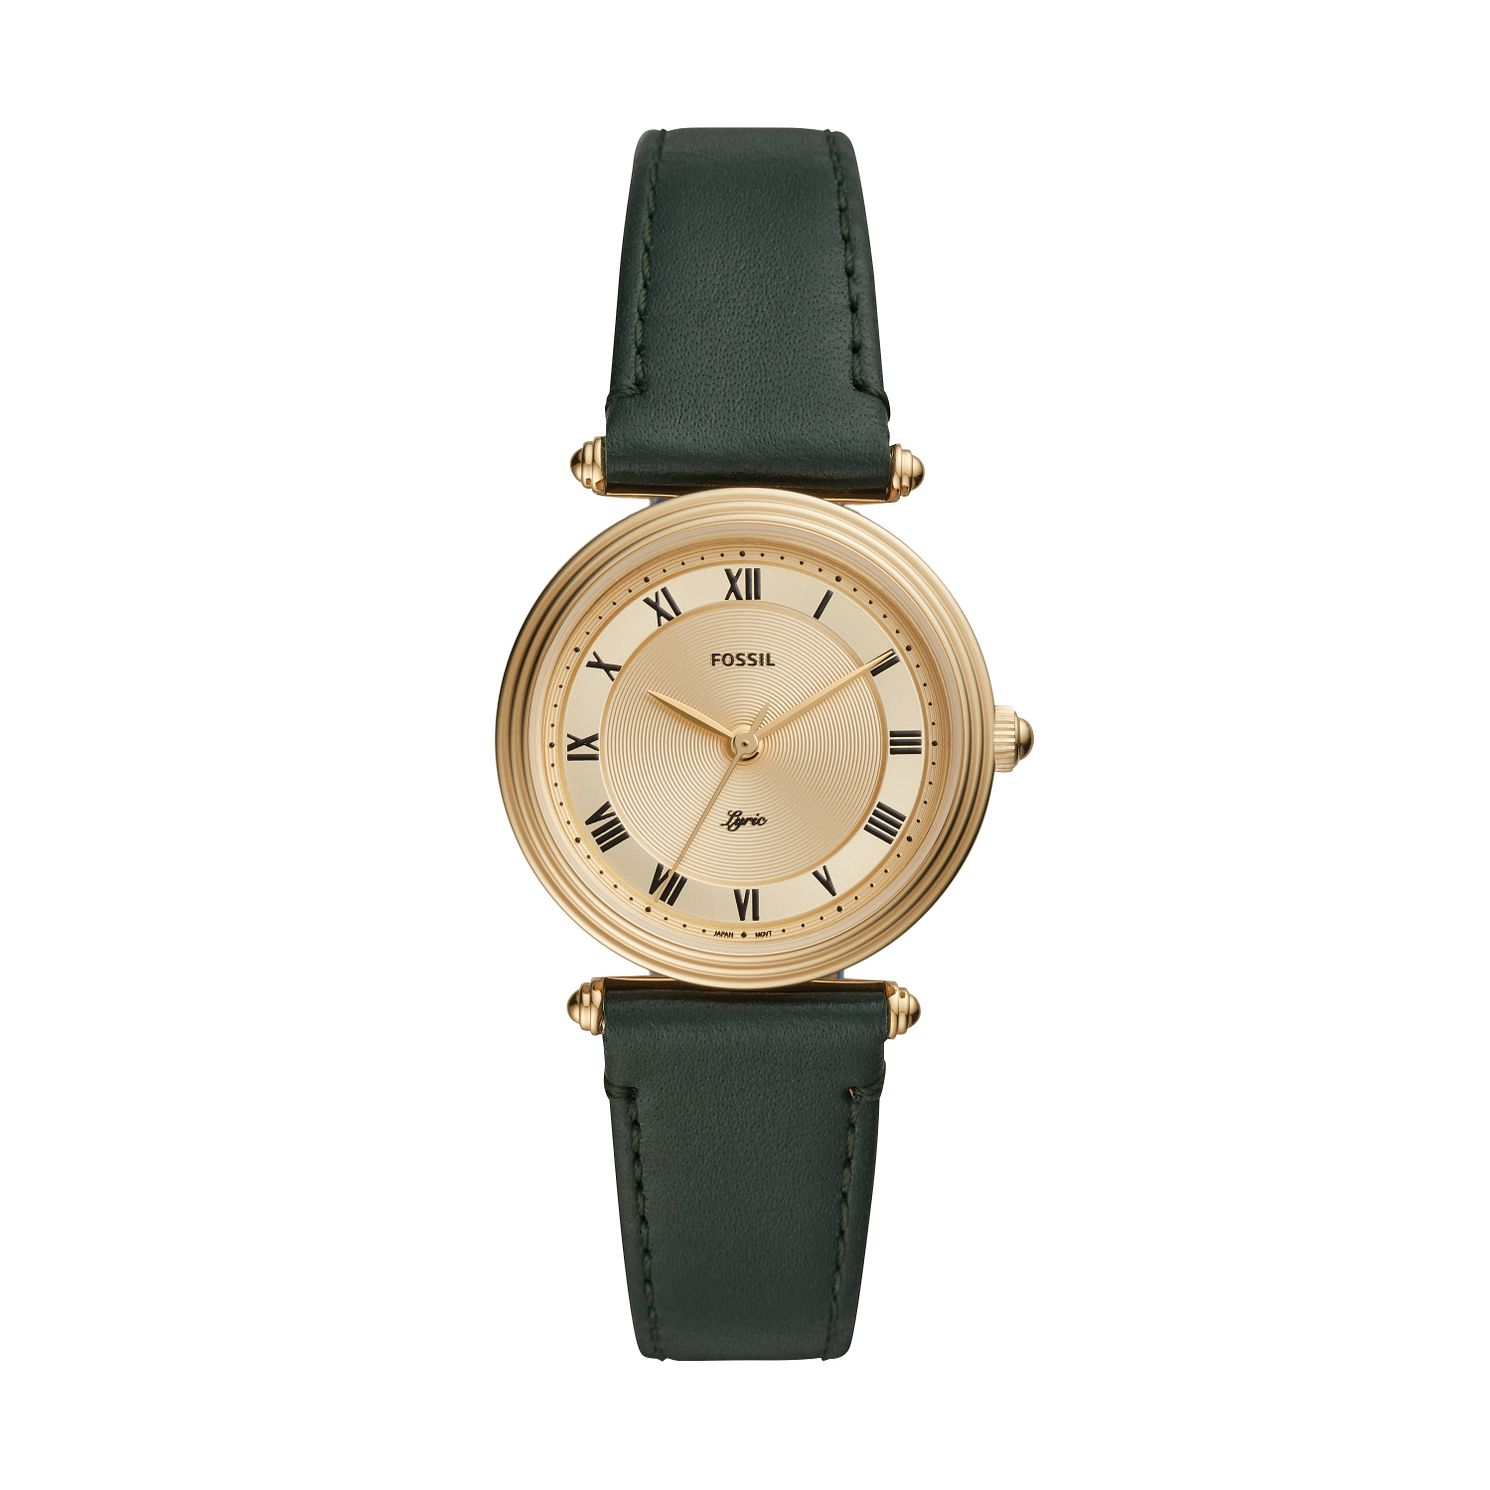 Fossil Ladies' Gold Tone Green Leather Strap Watch - Product number 4010892